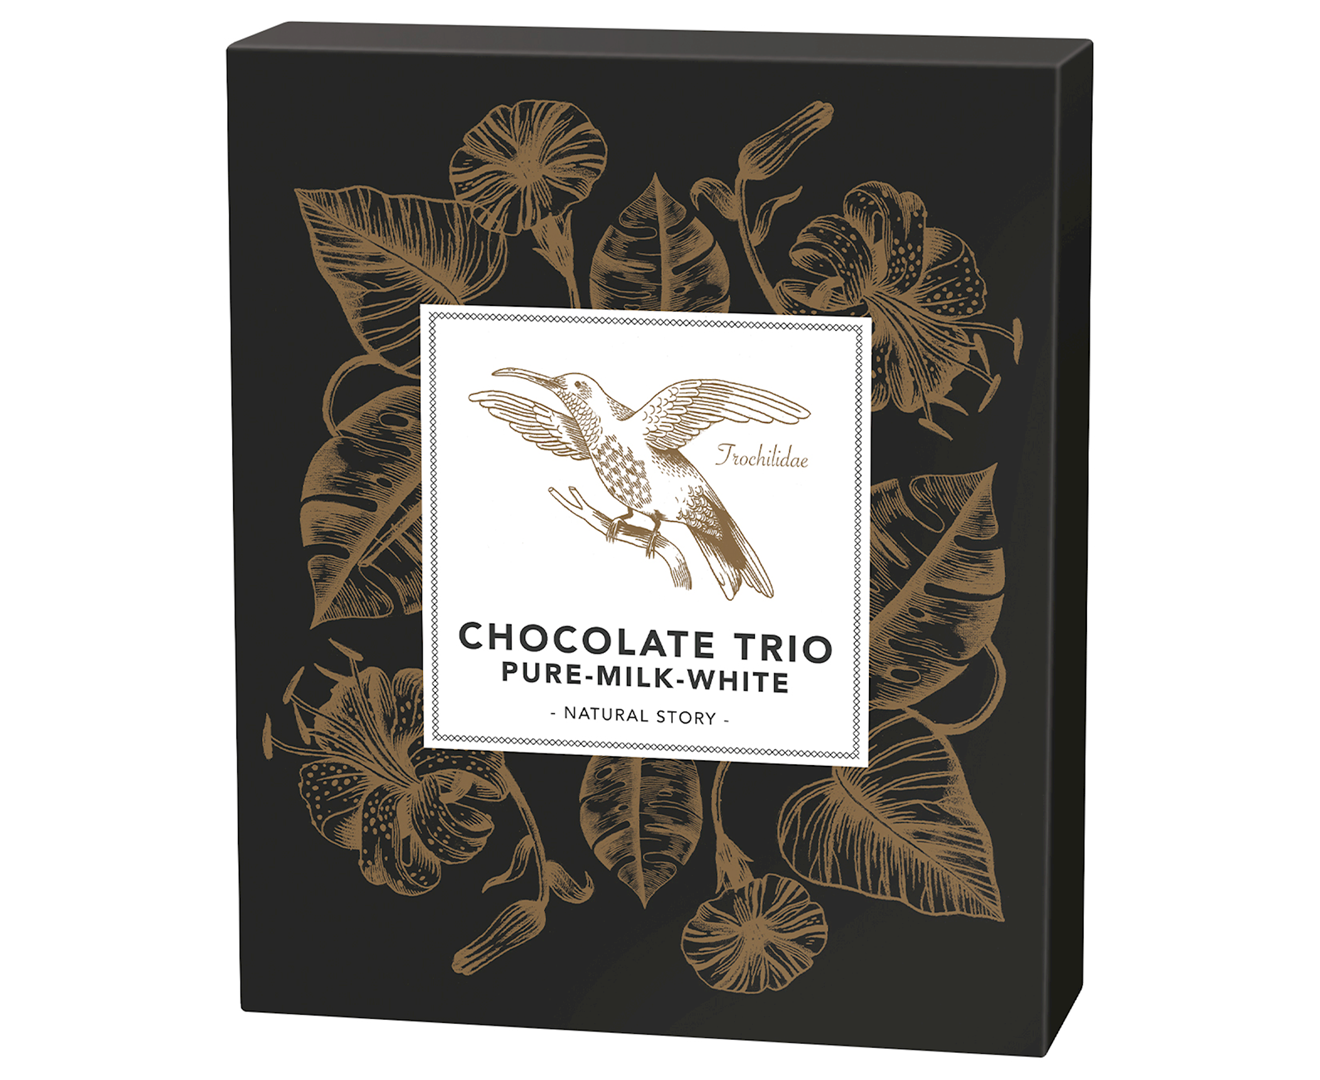 Productafbeelding Chocotrio Natural story 65g doos